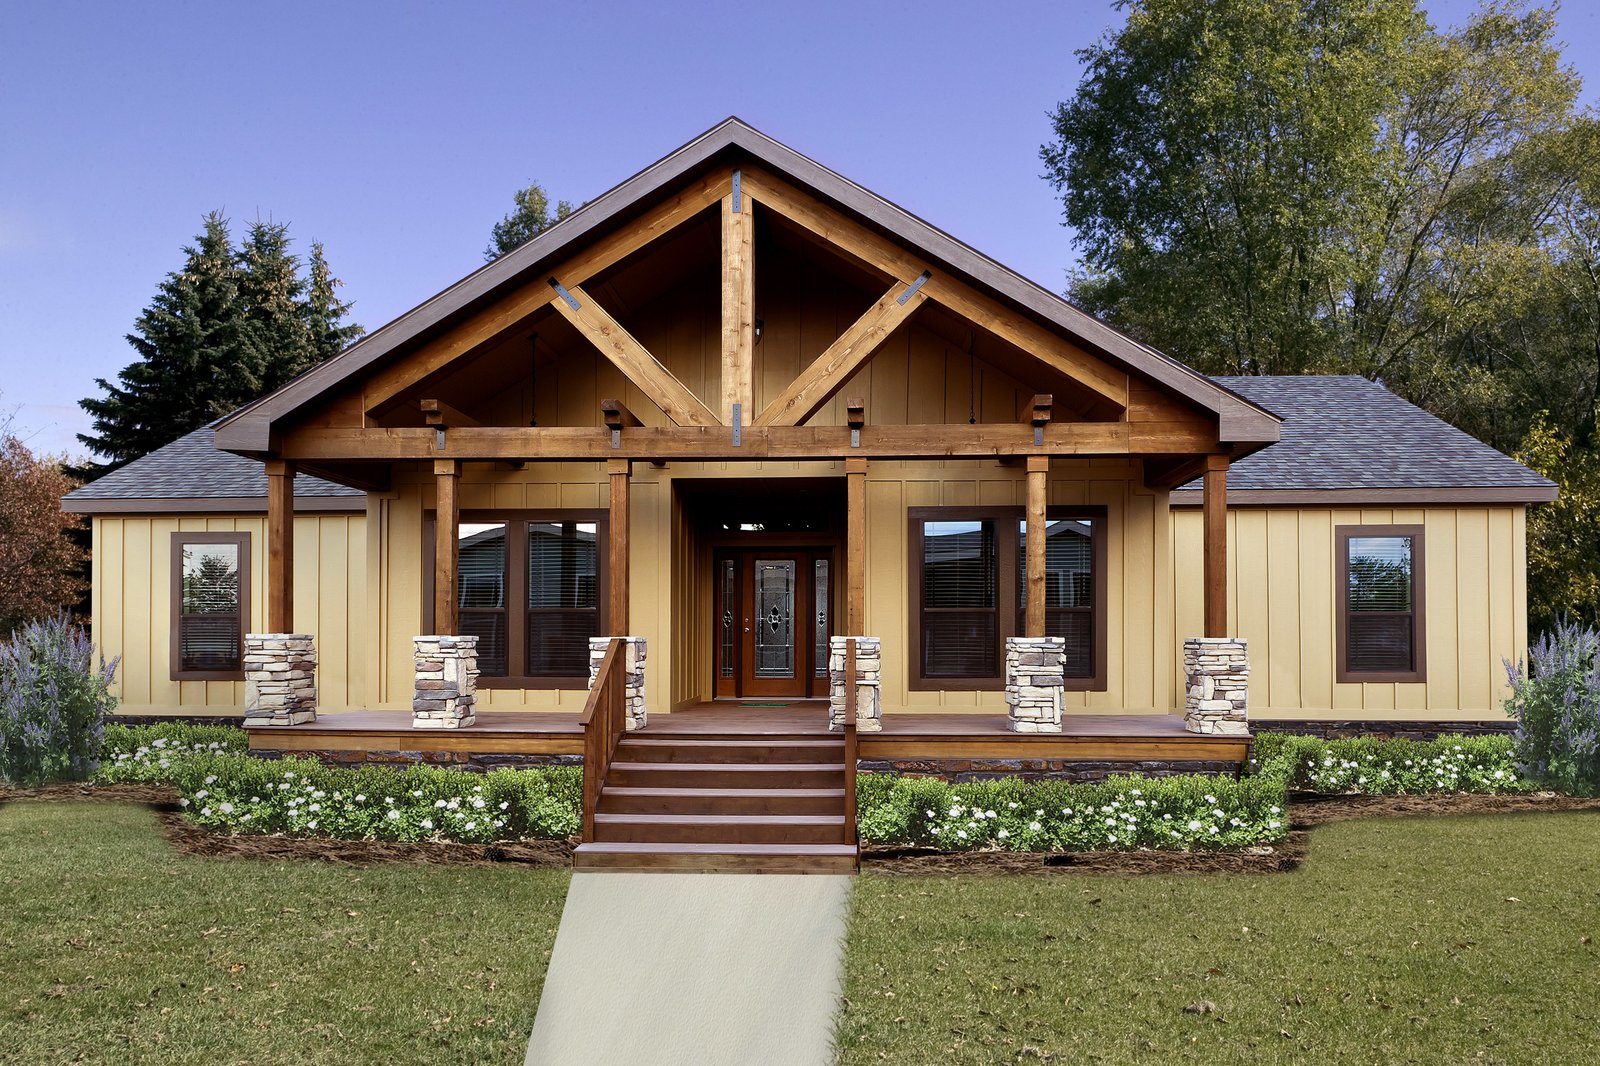 Pratt modular homes are budget friendly and customizable, with over 300 standard kit home floor plans to choose from with an infinite number of possibilities. Tagged: Exterior, House, Prefab Building Type, Wood Siding Material, and Gable RoofLine.  Photo 9 of 11 in 10 Kit Home Companies in the South